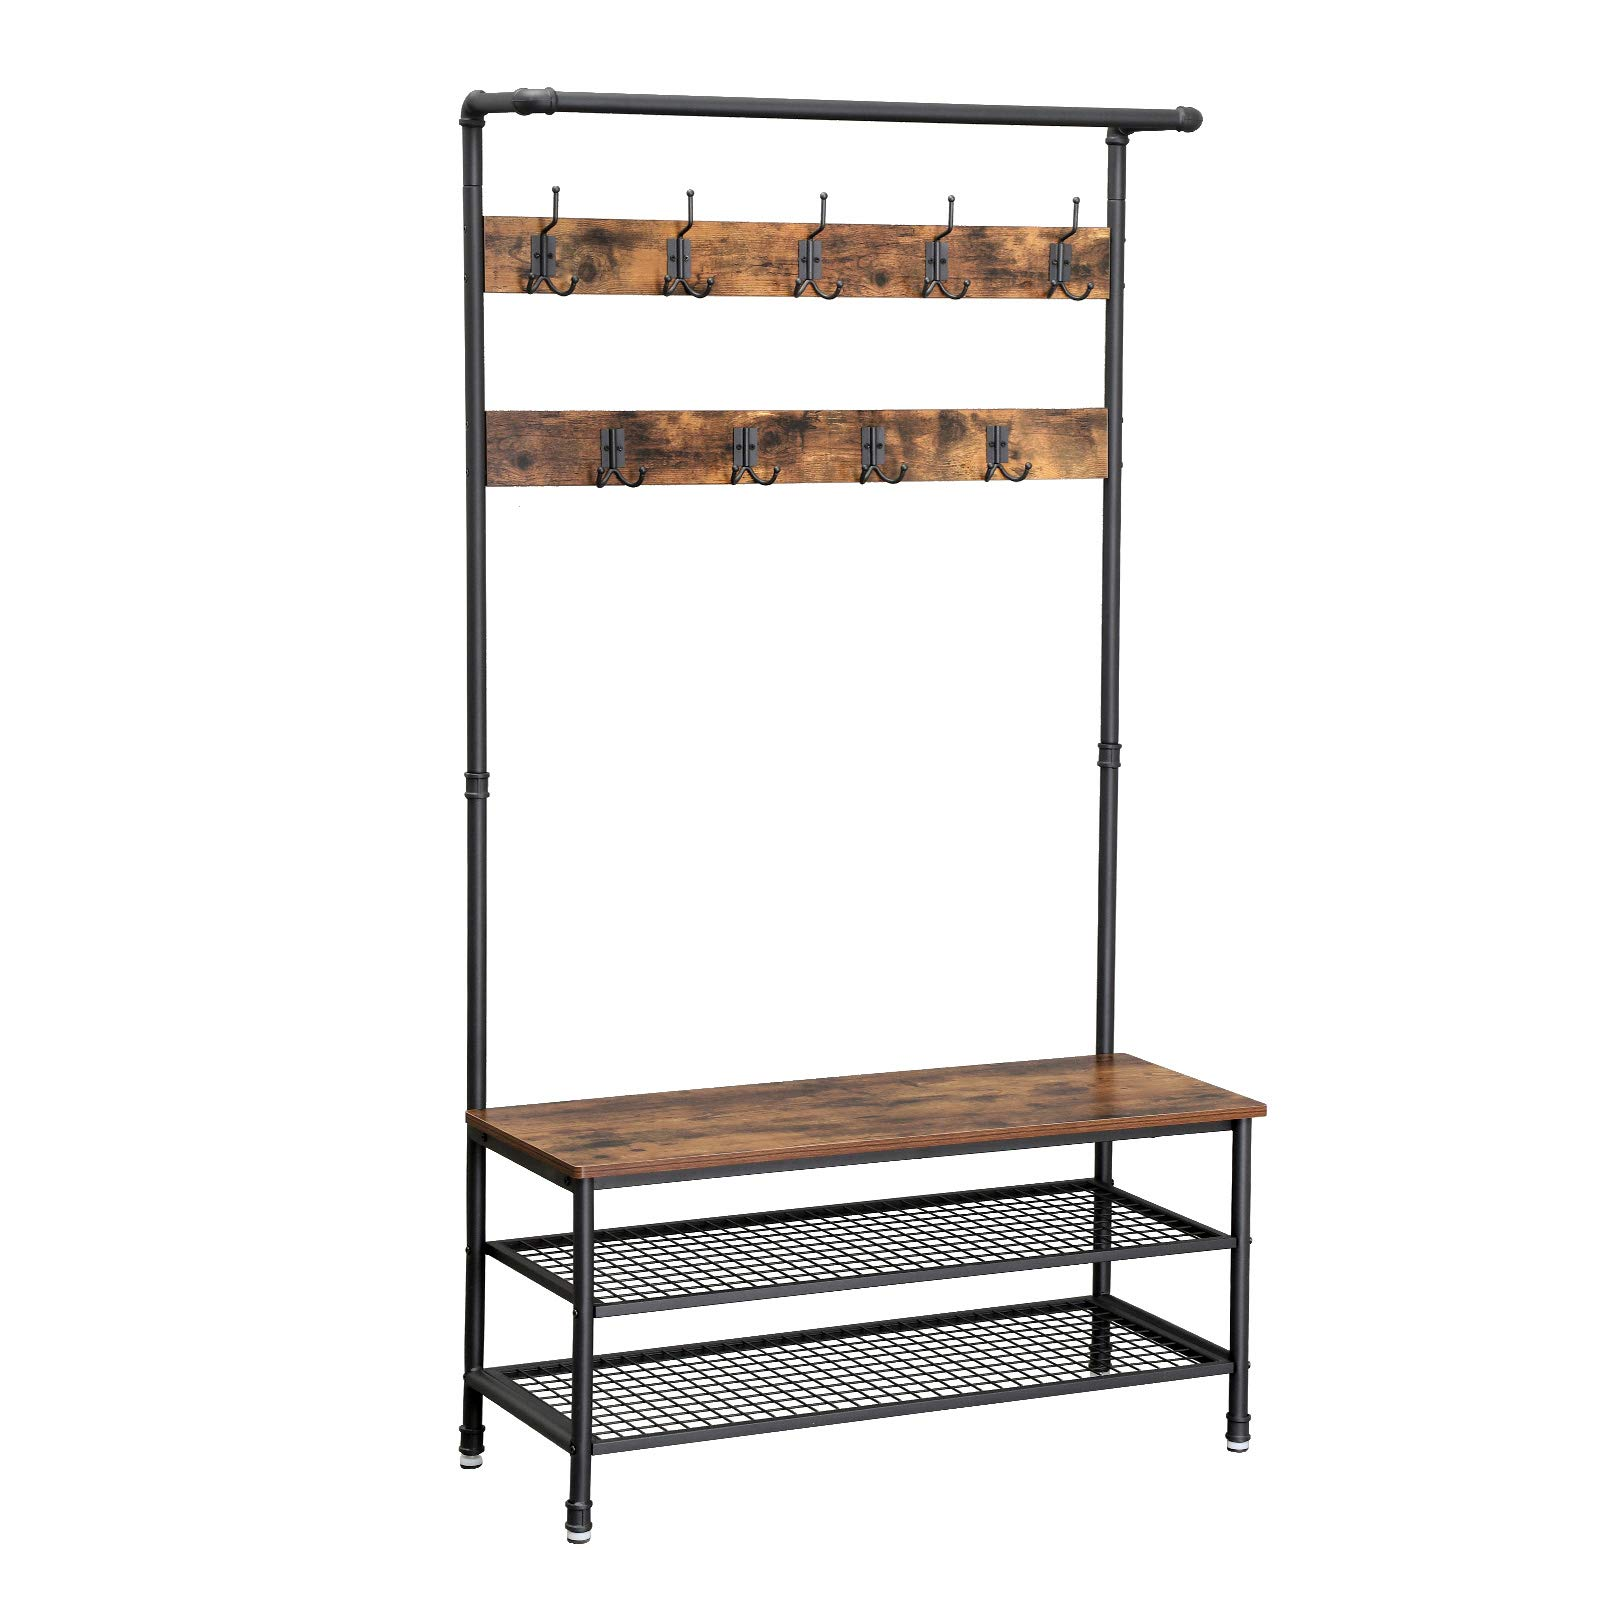 VASAGLE Industrial Storage Bench, Pipe Style Large Hat and Coat Stand with 9 Hooks and Shoe Rack, Multifunctional Hall Tree, Sturdy Iron Frame UHSR47BX, Rustic Brown